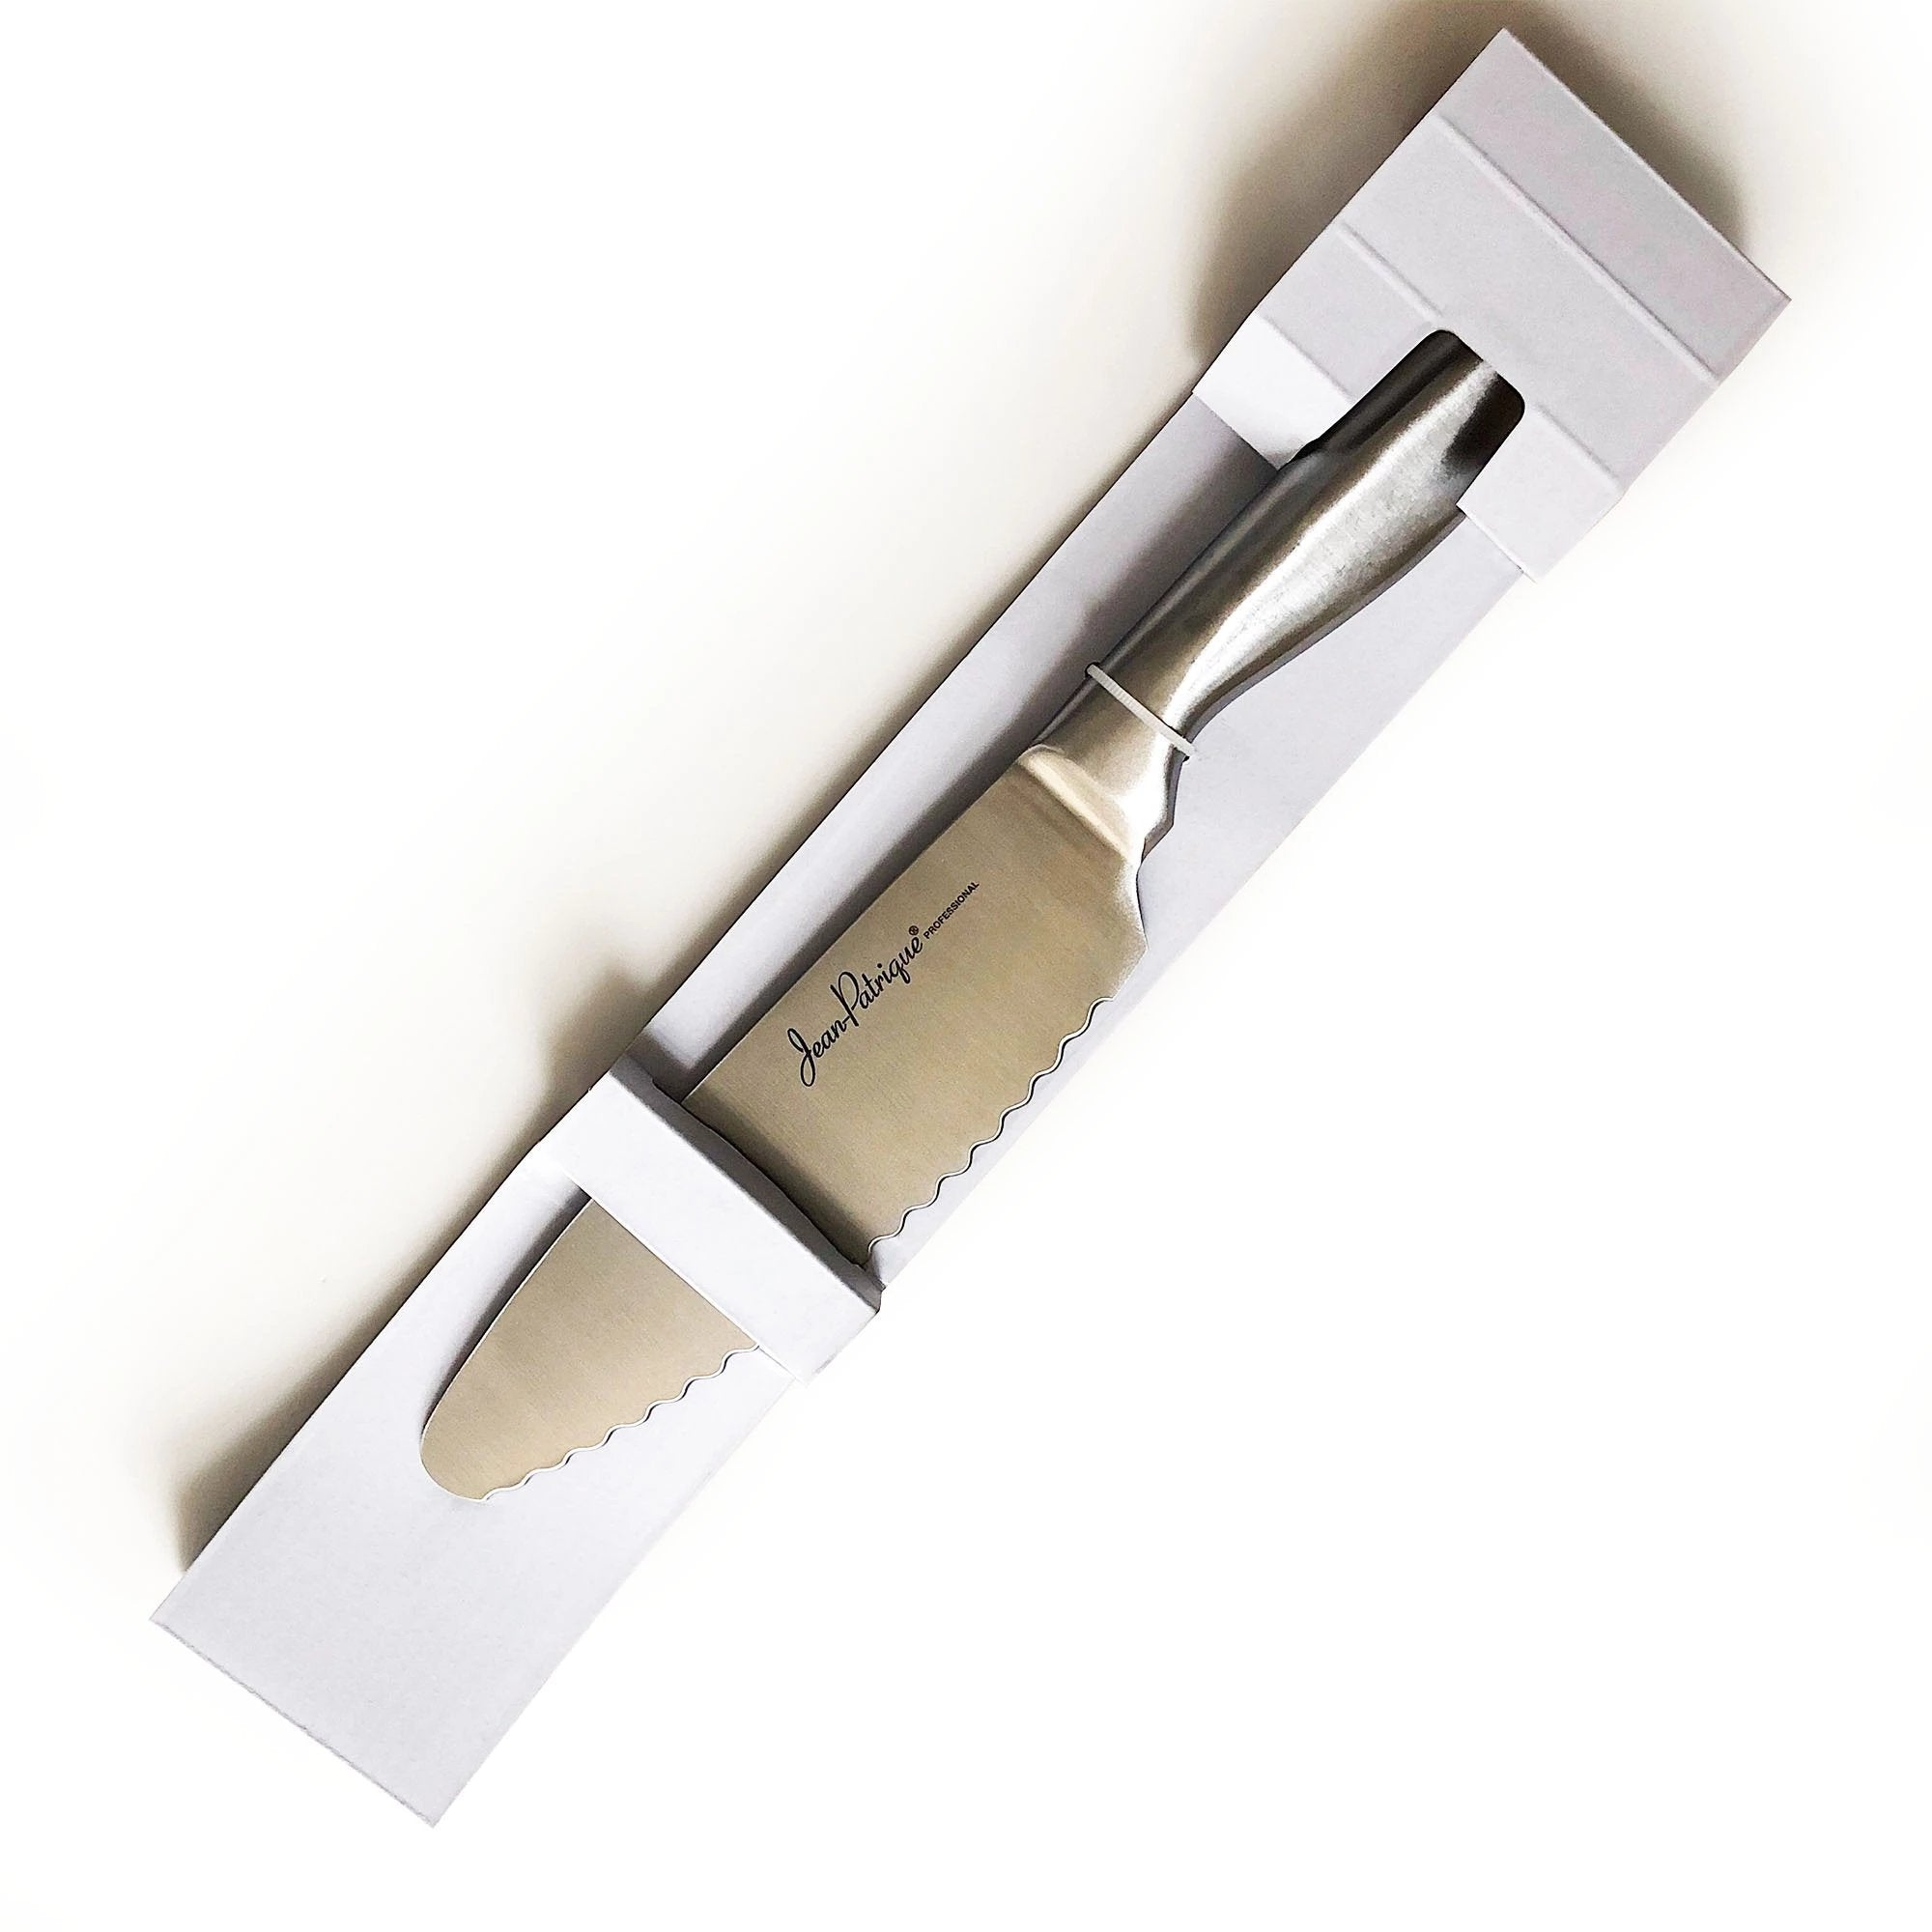 Master Gourmet Professional Stainless Steel Sandwich Knife